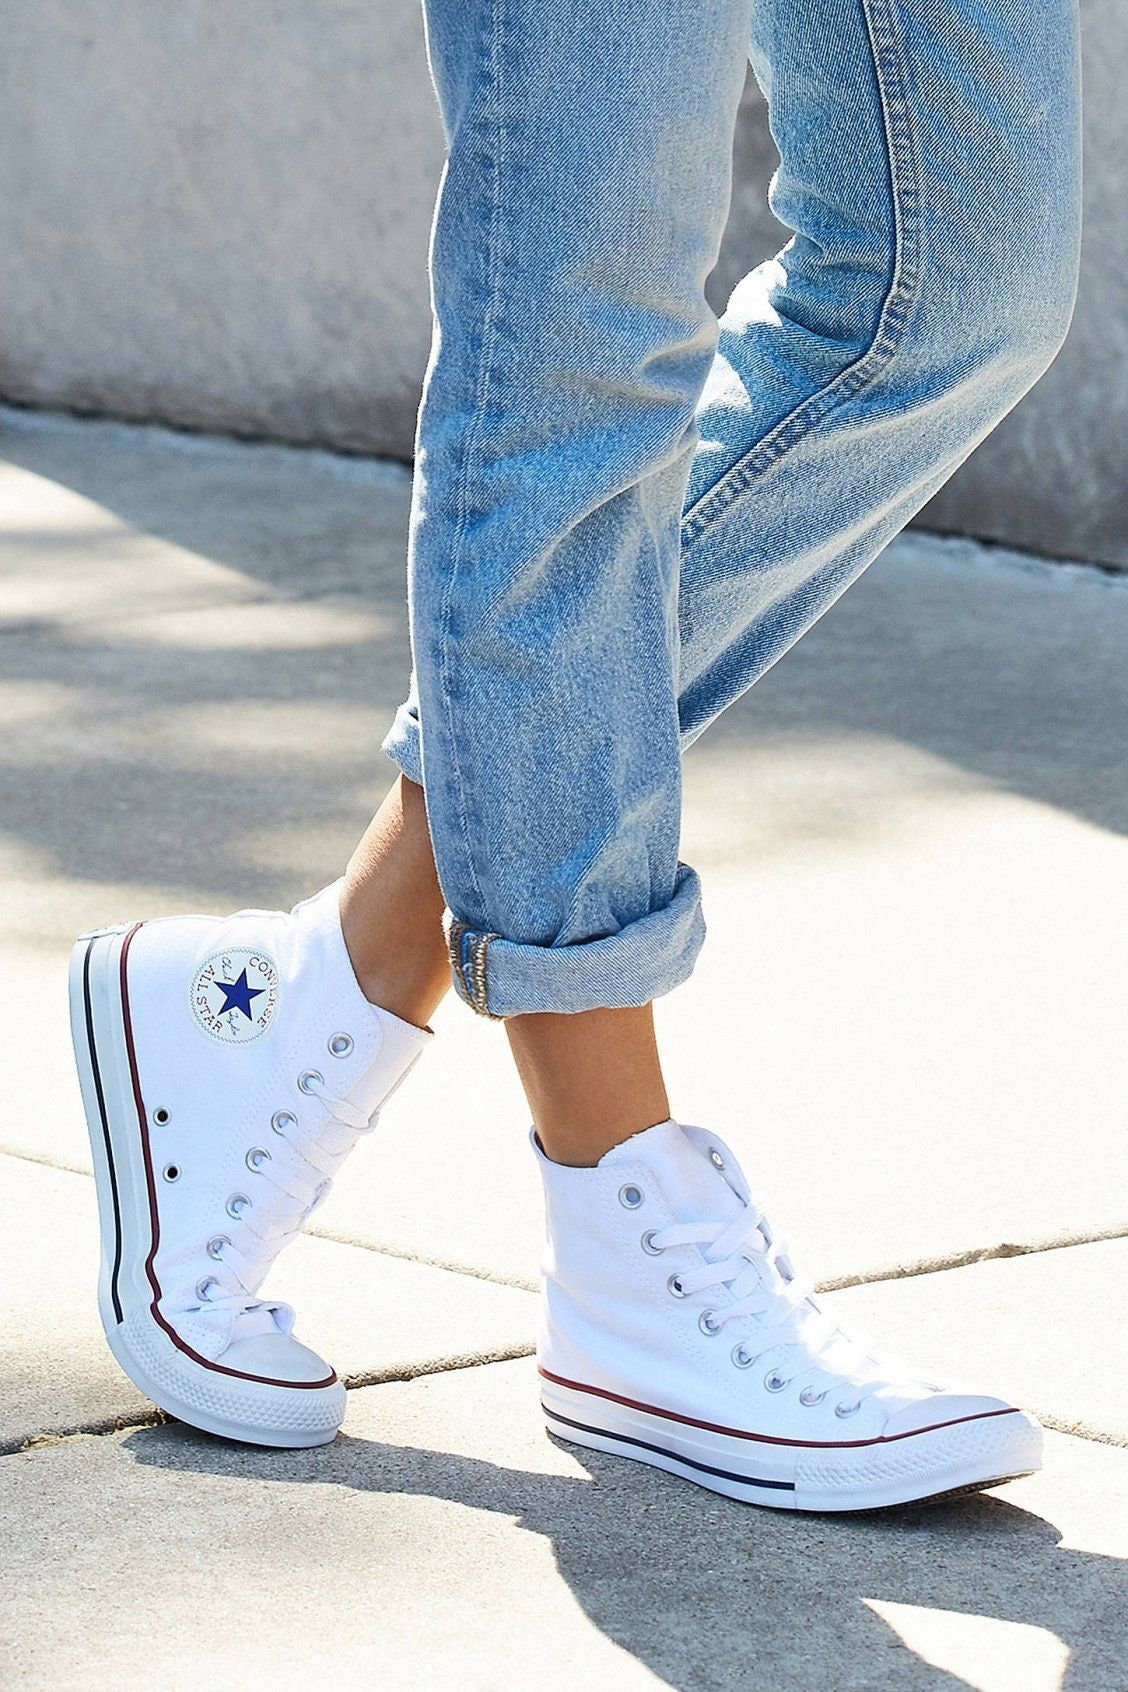 White Converse High Top Mens Ladies Glass Slippers w  Swarovski Crystal  Rhinestone Bling Chuck Taylor All Star Bride Wedding Sneakers Shoes 781e2fb51b87